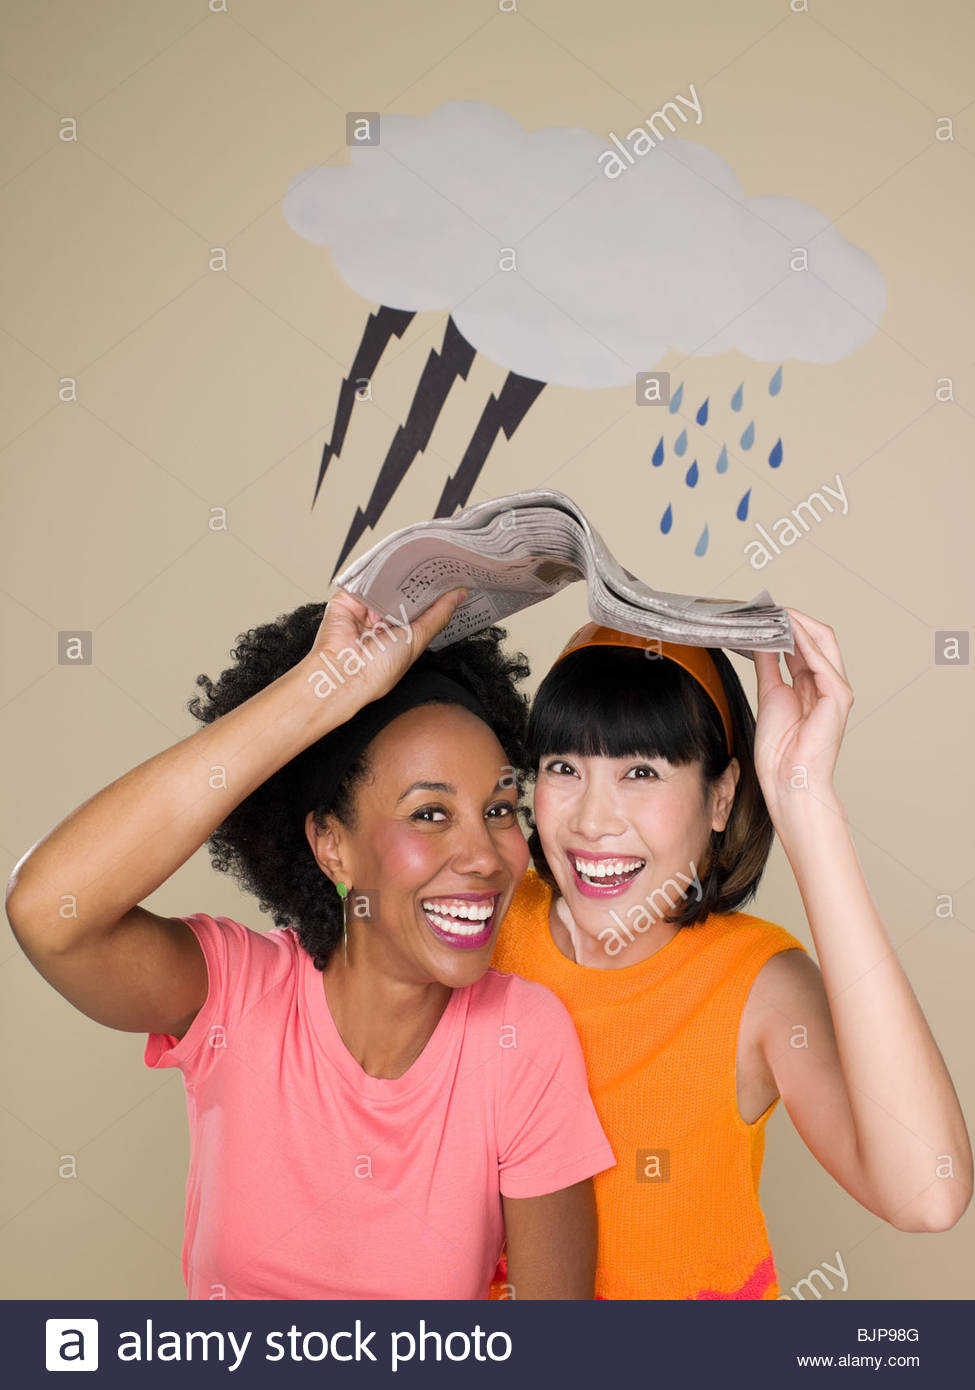 Women sheltering from weather - Stock Image